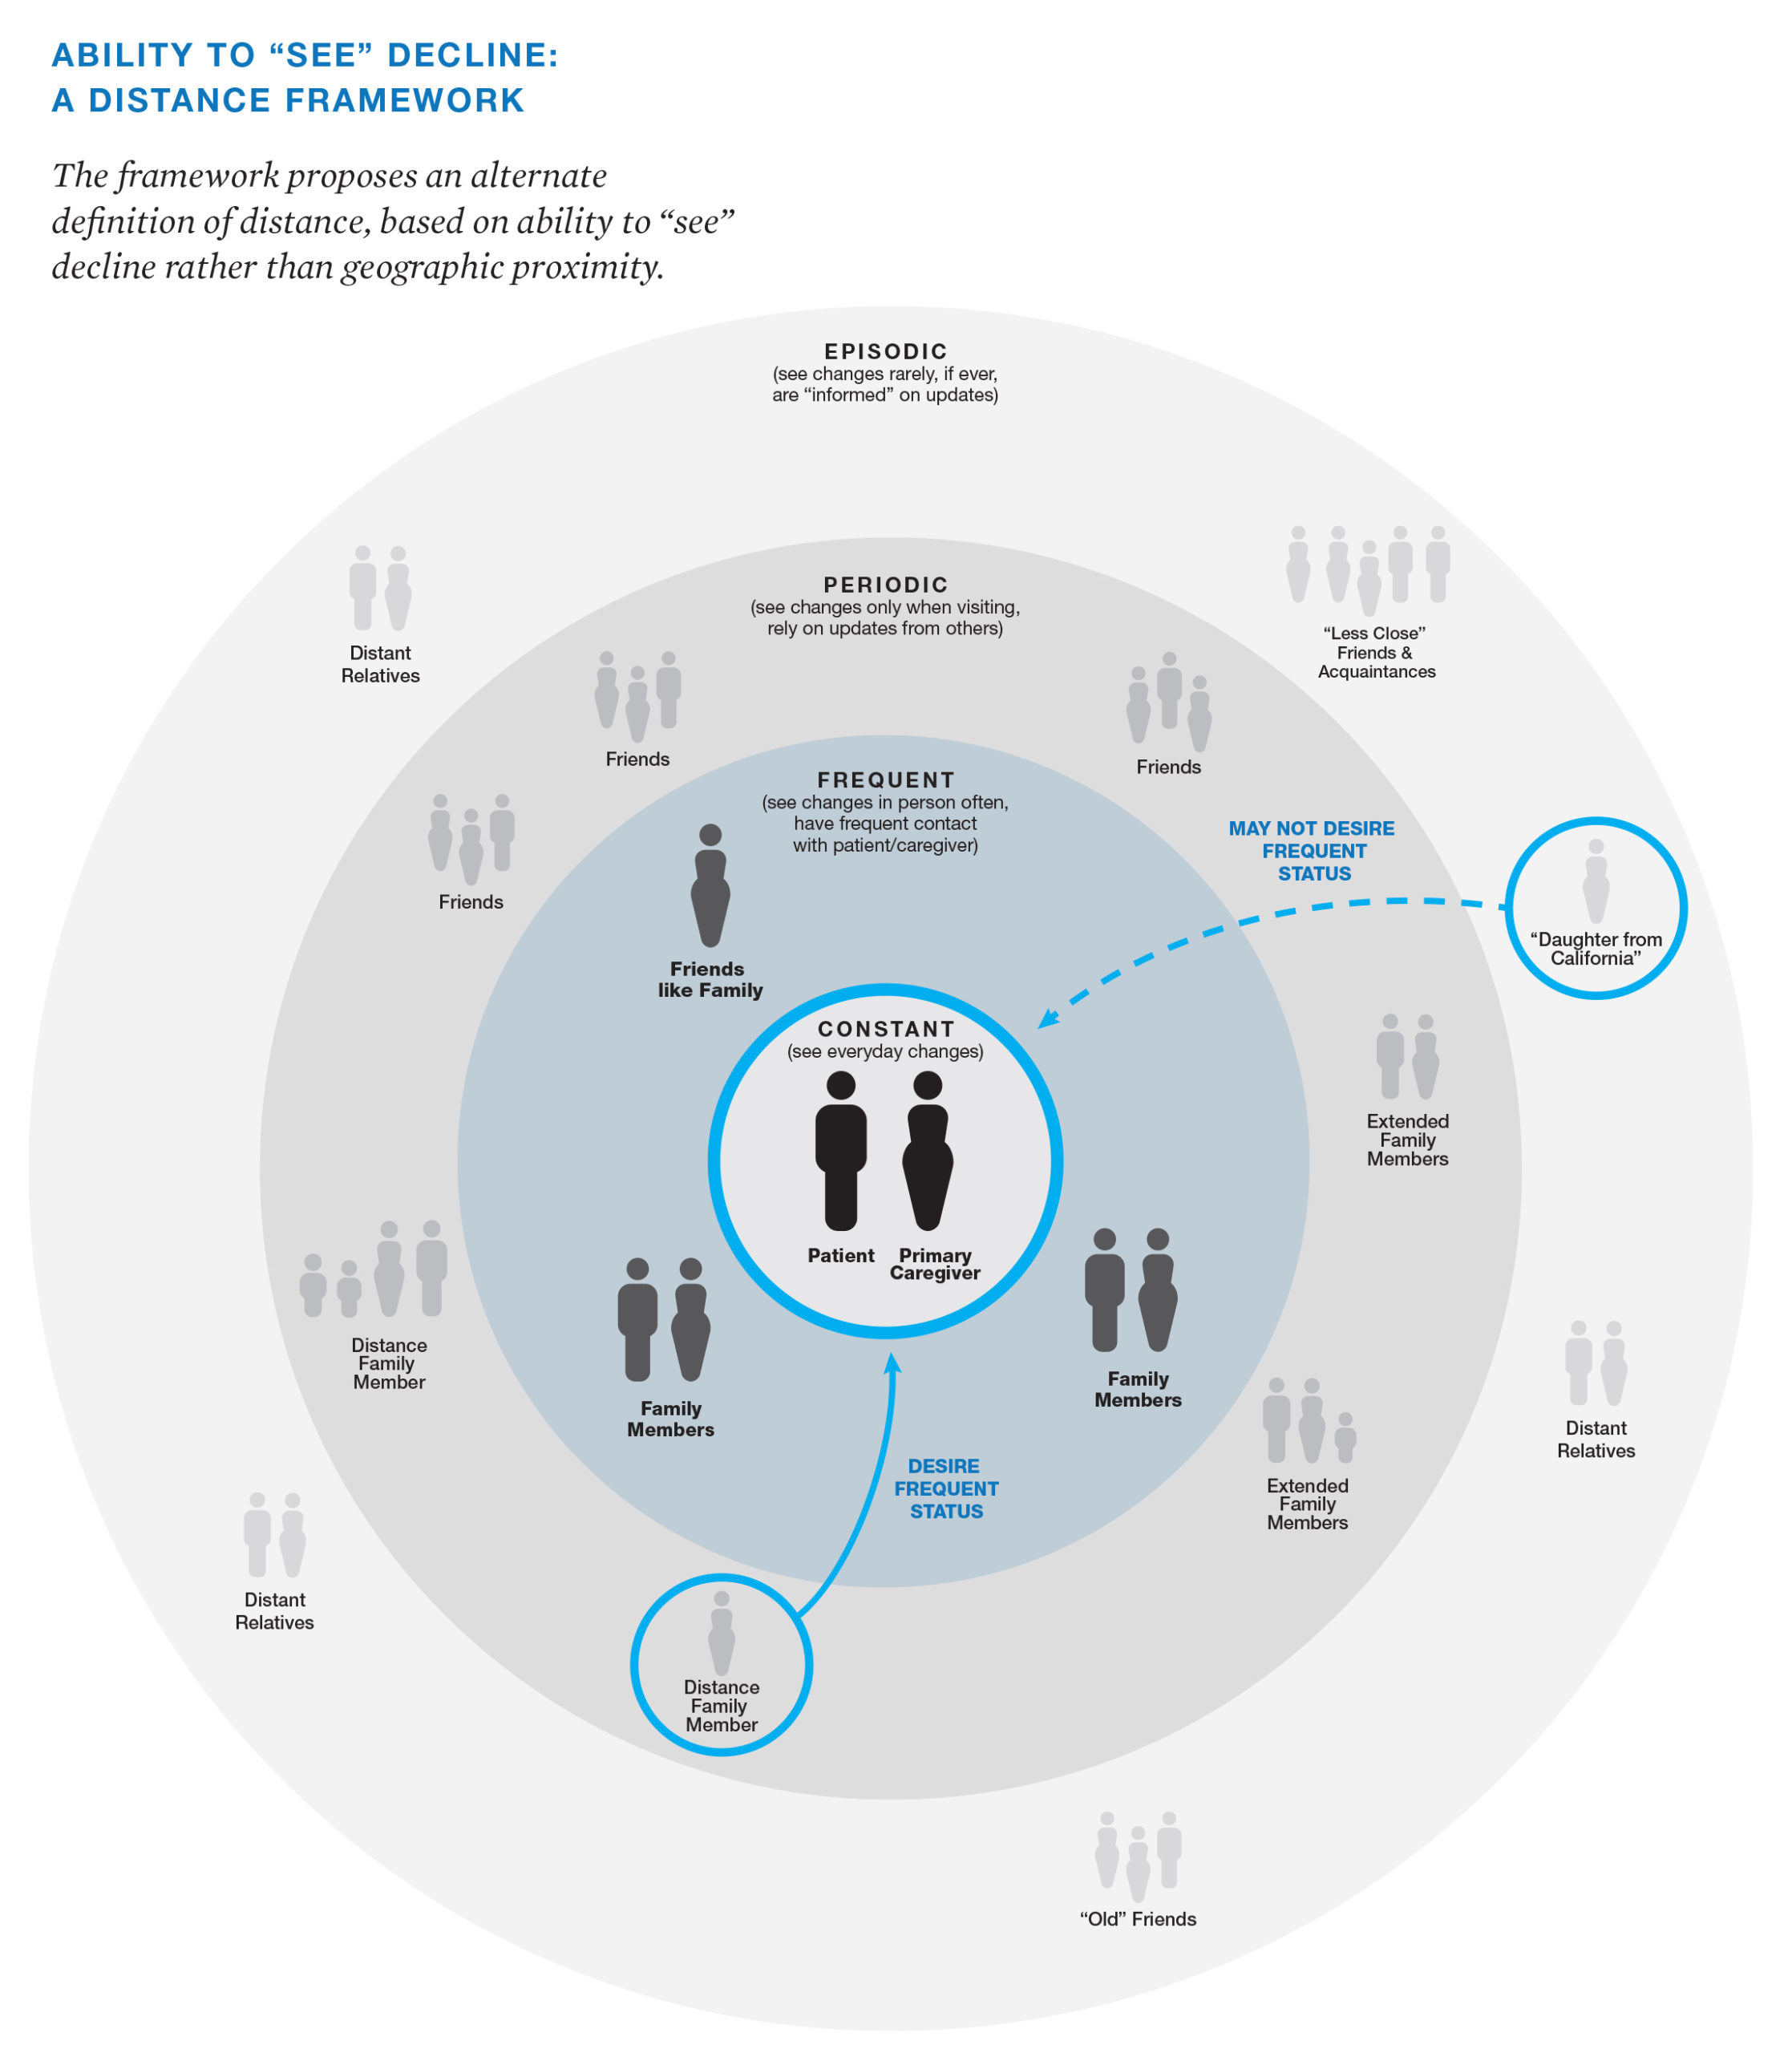 Design for End-of-life. Karen Oikonen's Ability to see decline in end of life death and dying